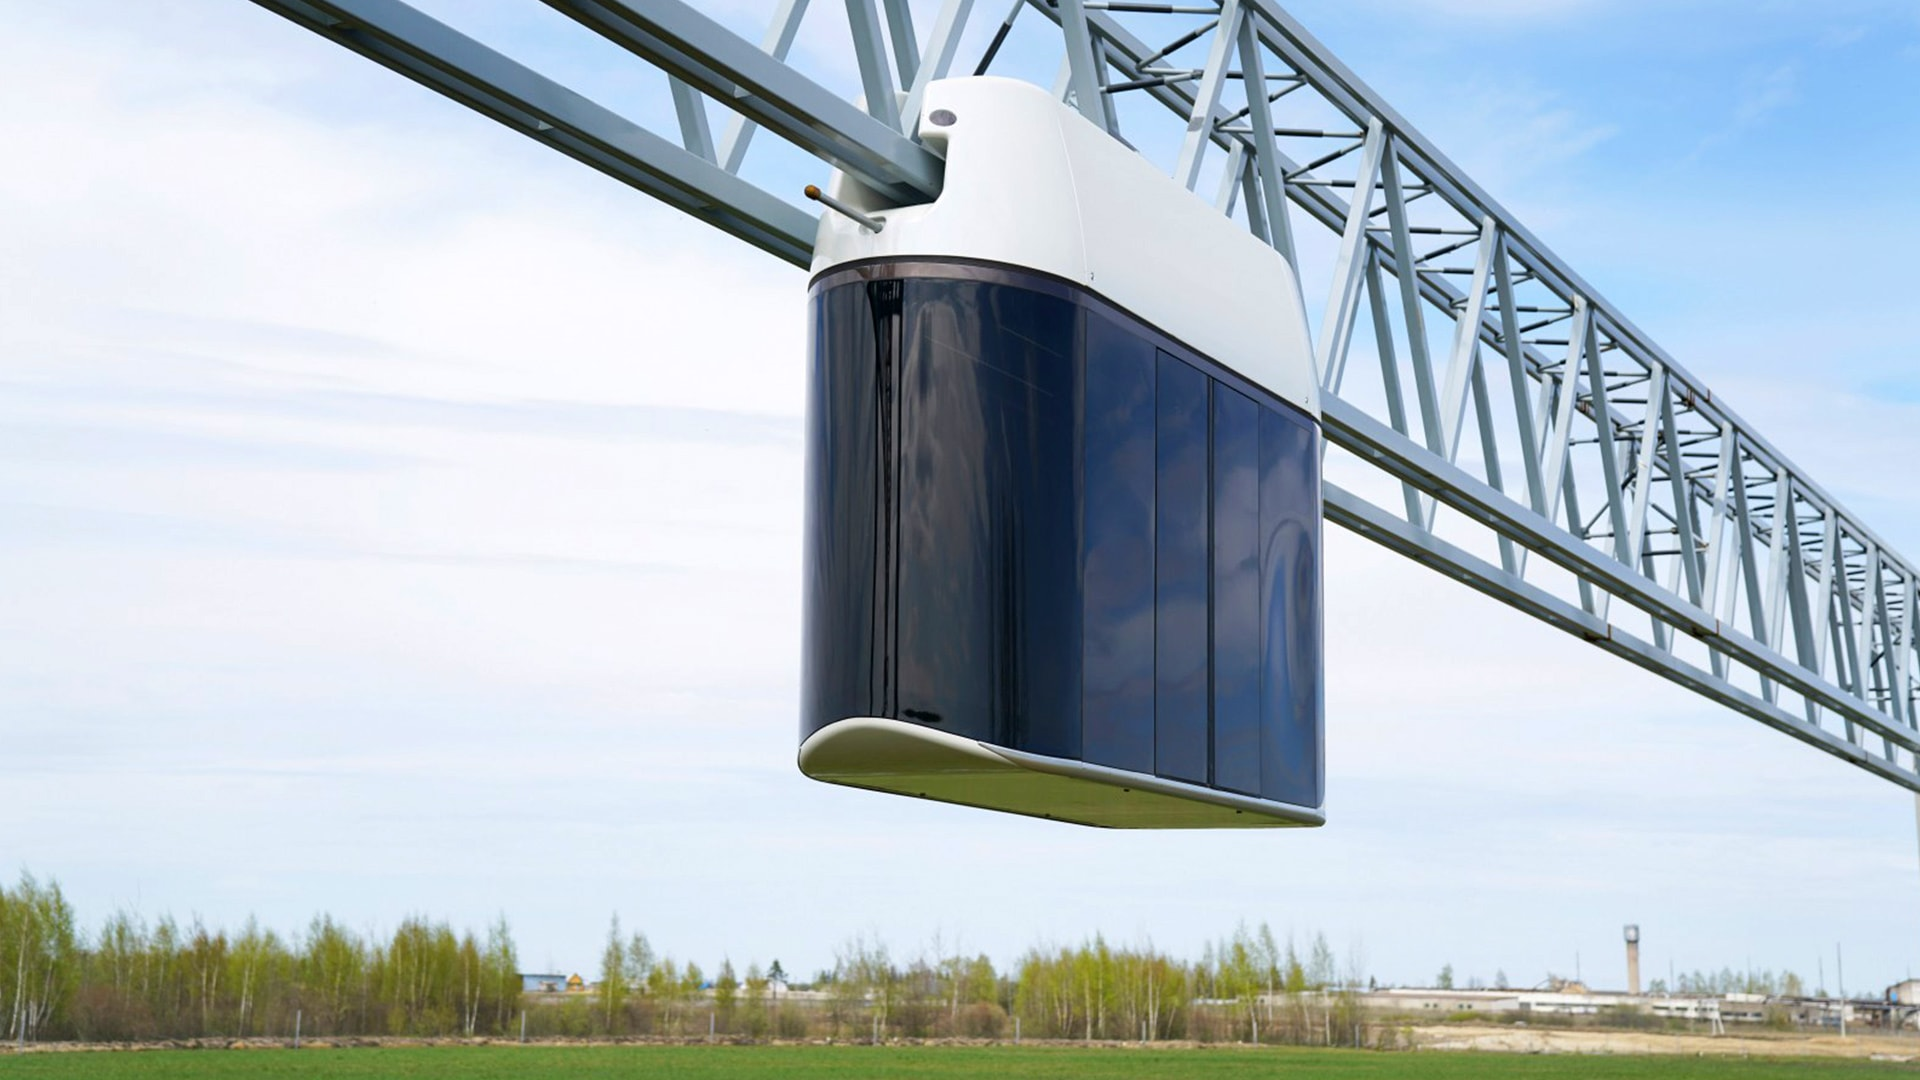 SkyWay-transport